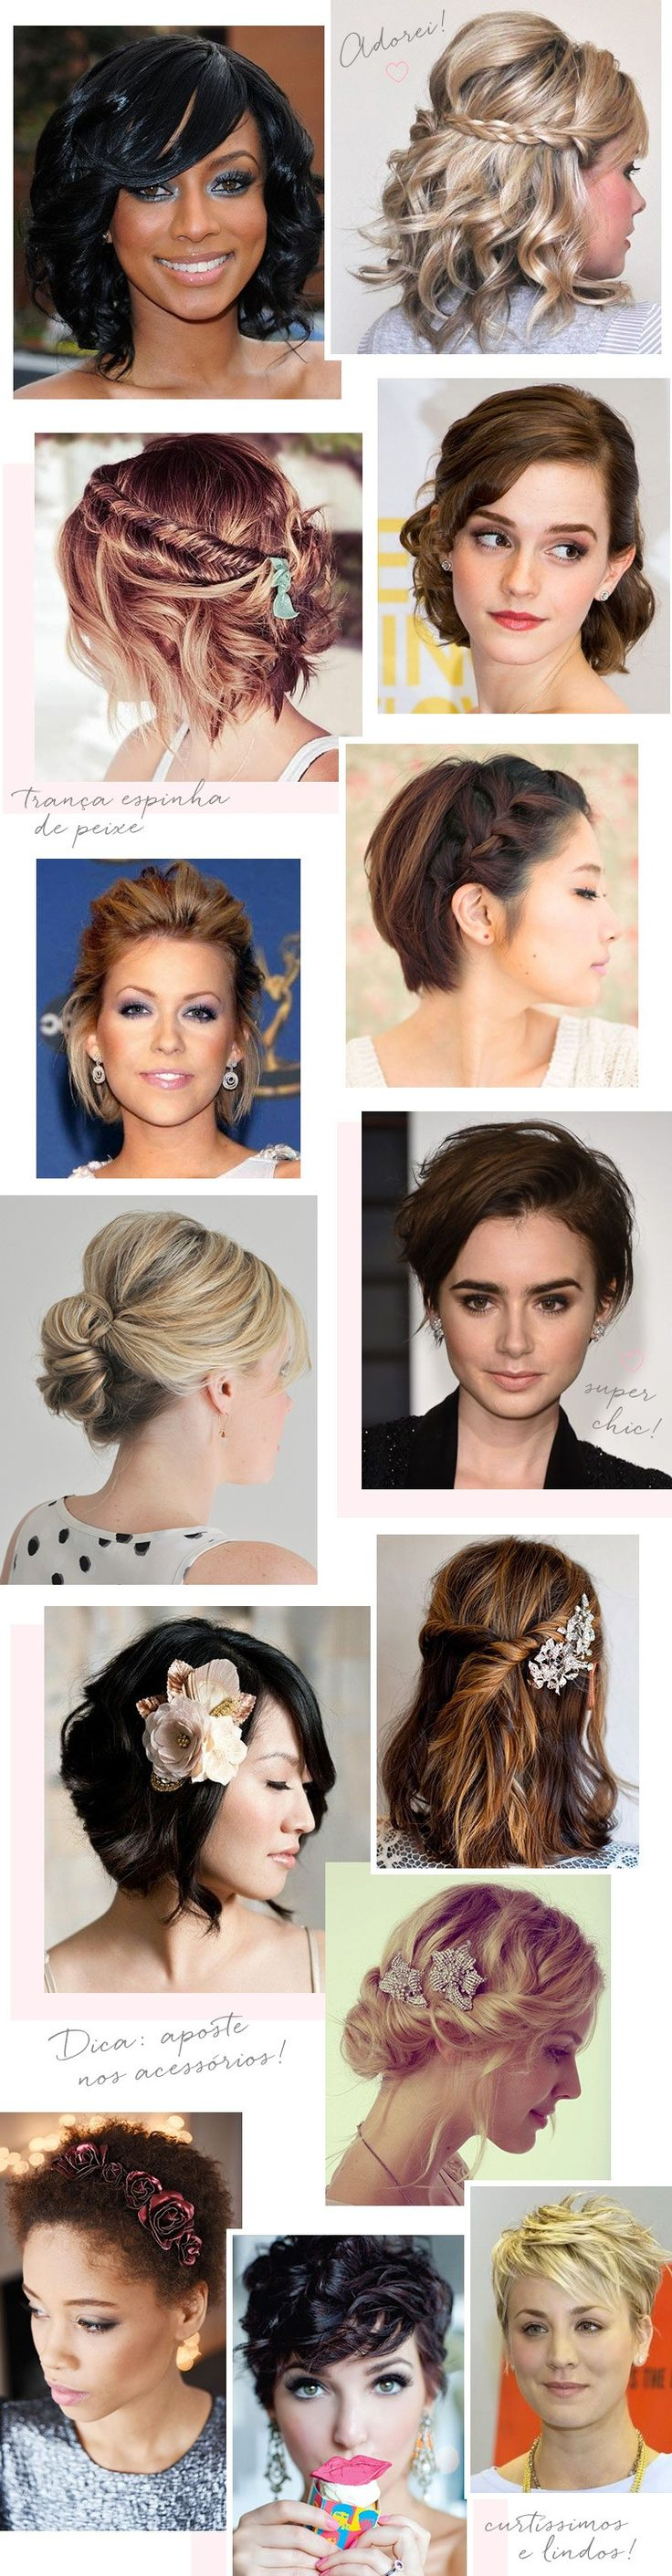 976 best hair images on Pinterest